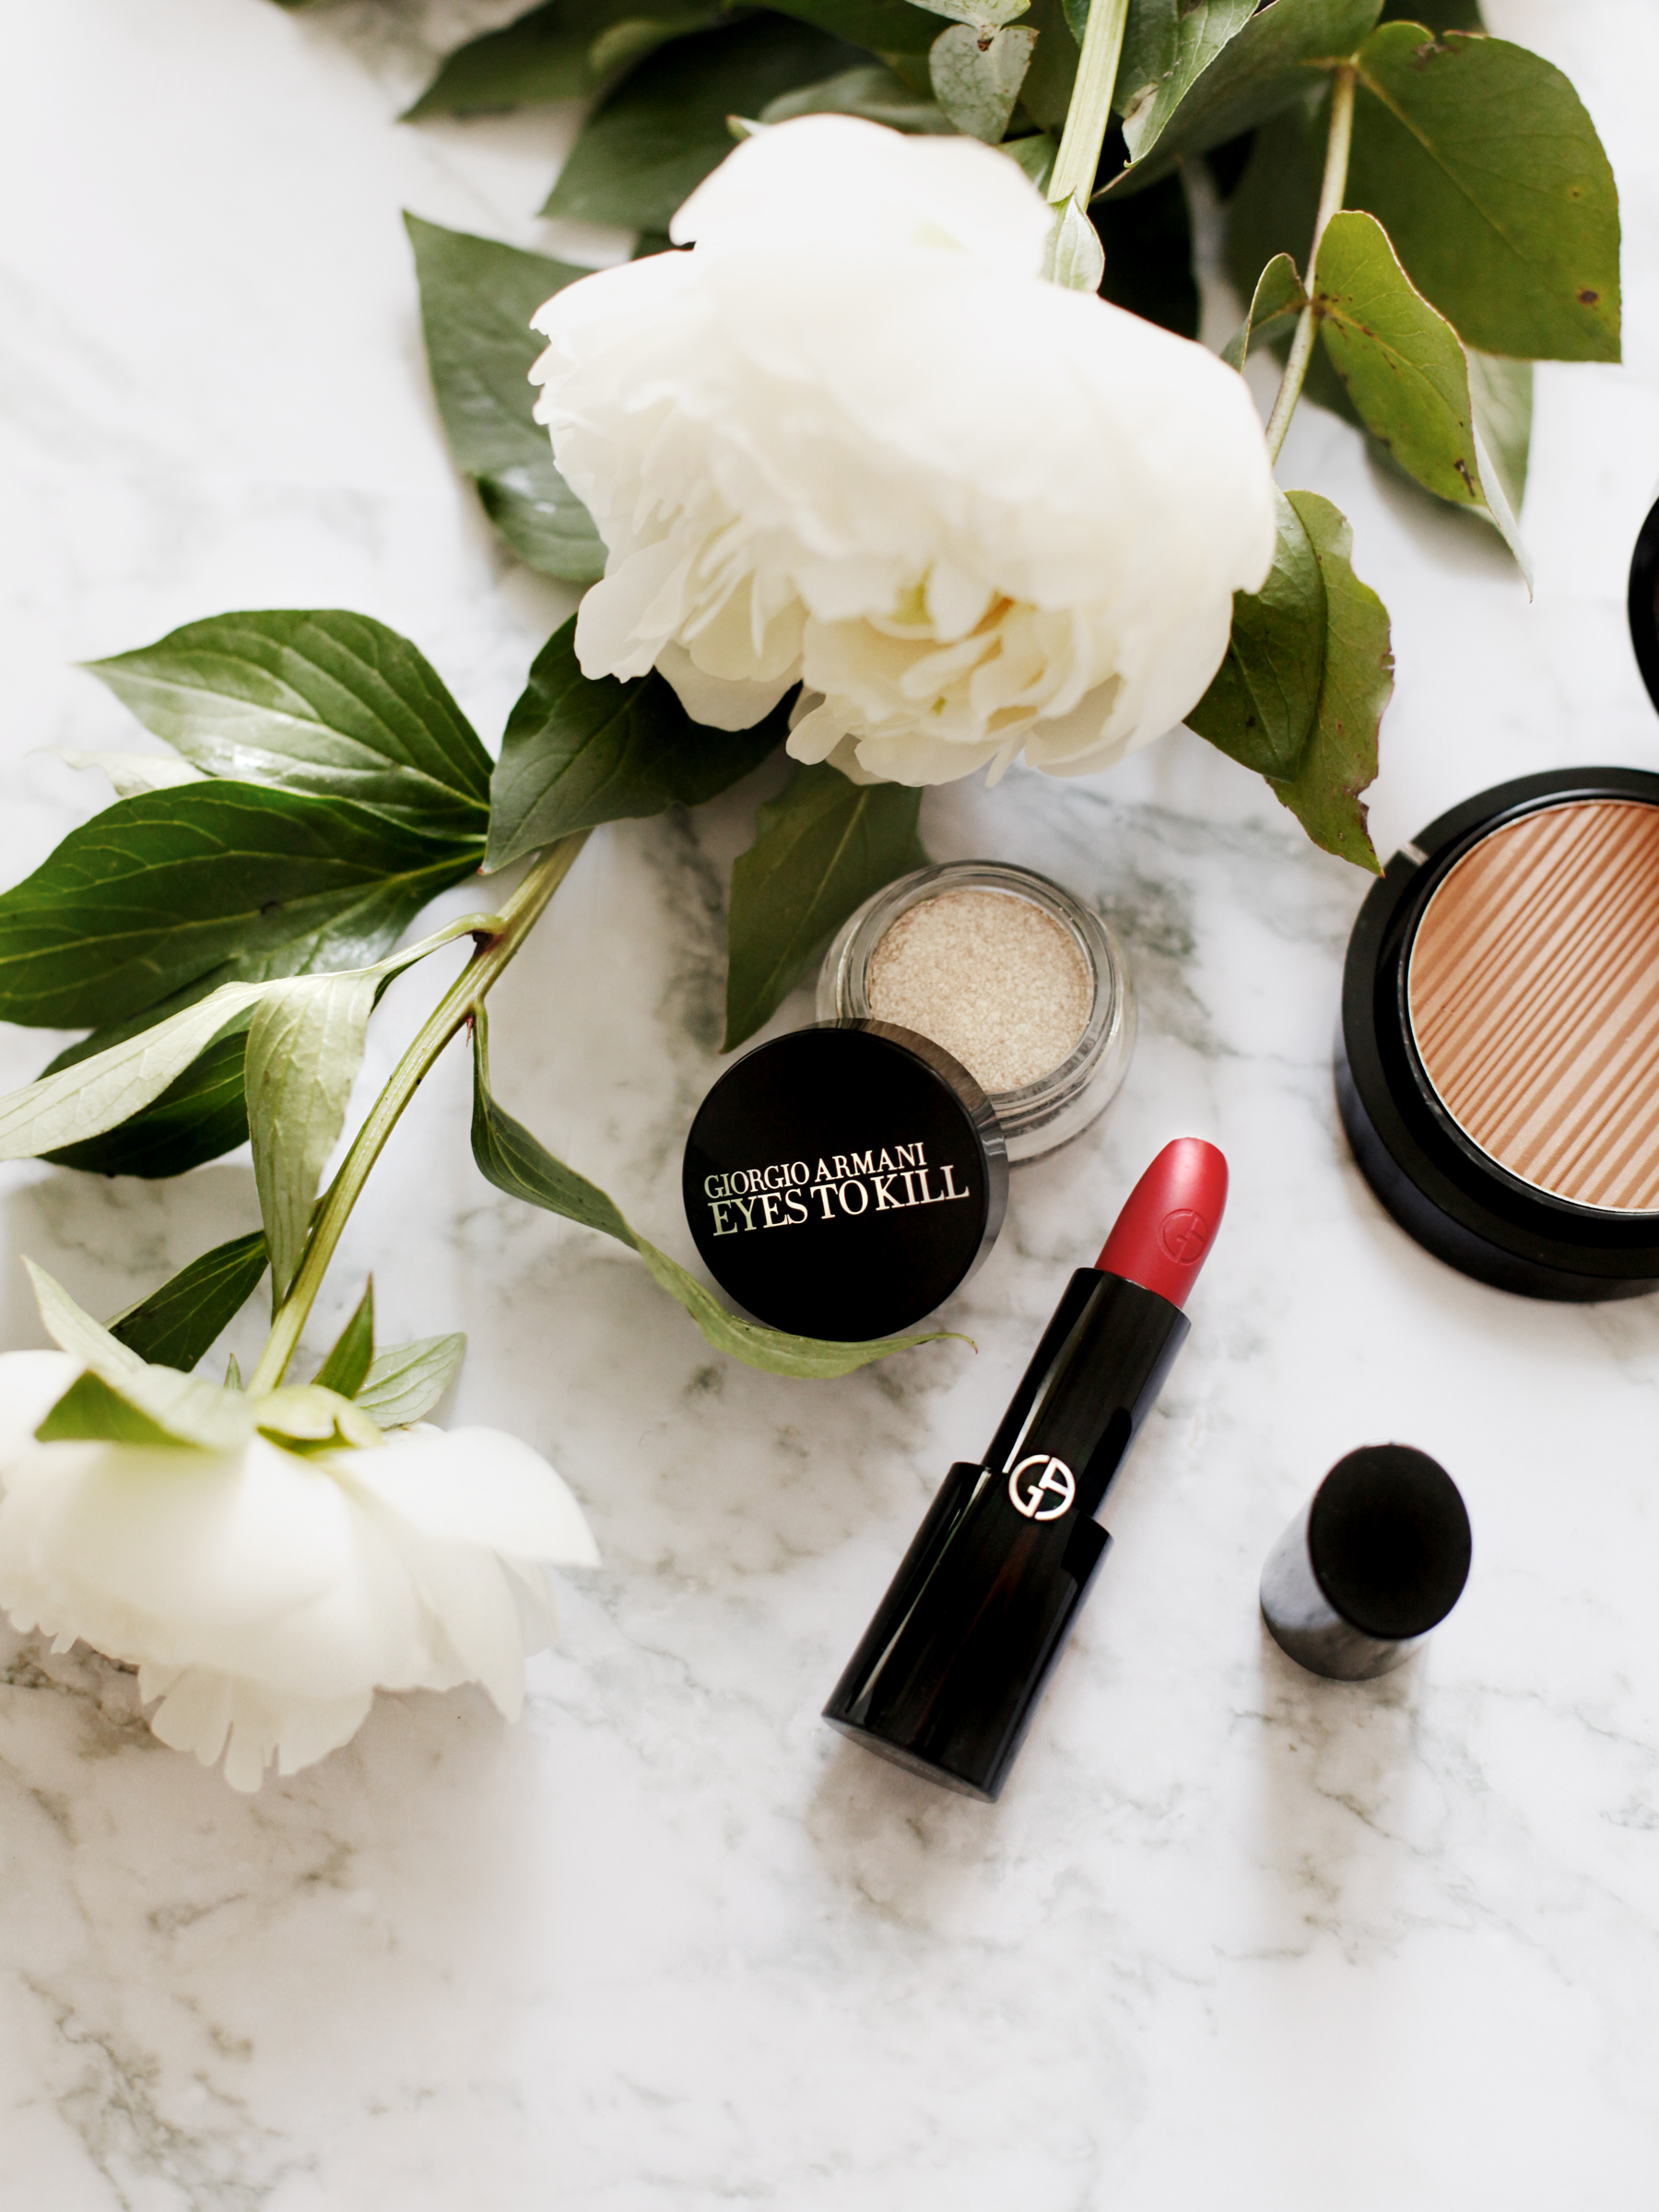 armani beauty makeup beauty beautyblogger bronzer red lipstick luxury products douglas mascara marble peony white flatlay cats & dogs beautyblog ricarda schernus schminke bloggerin 3